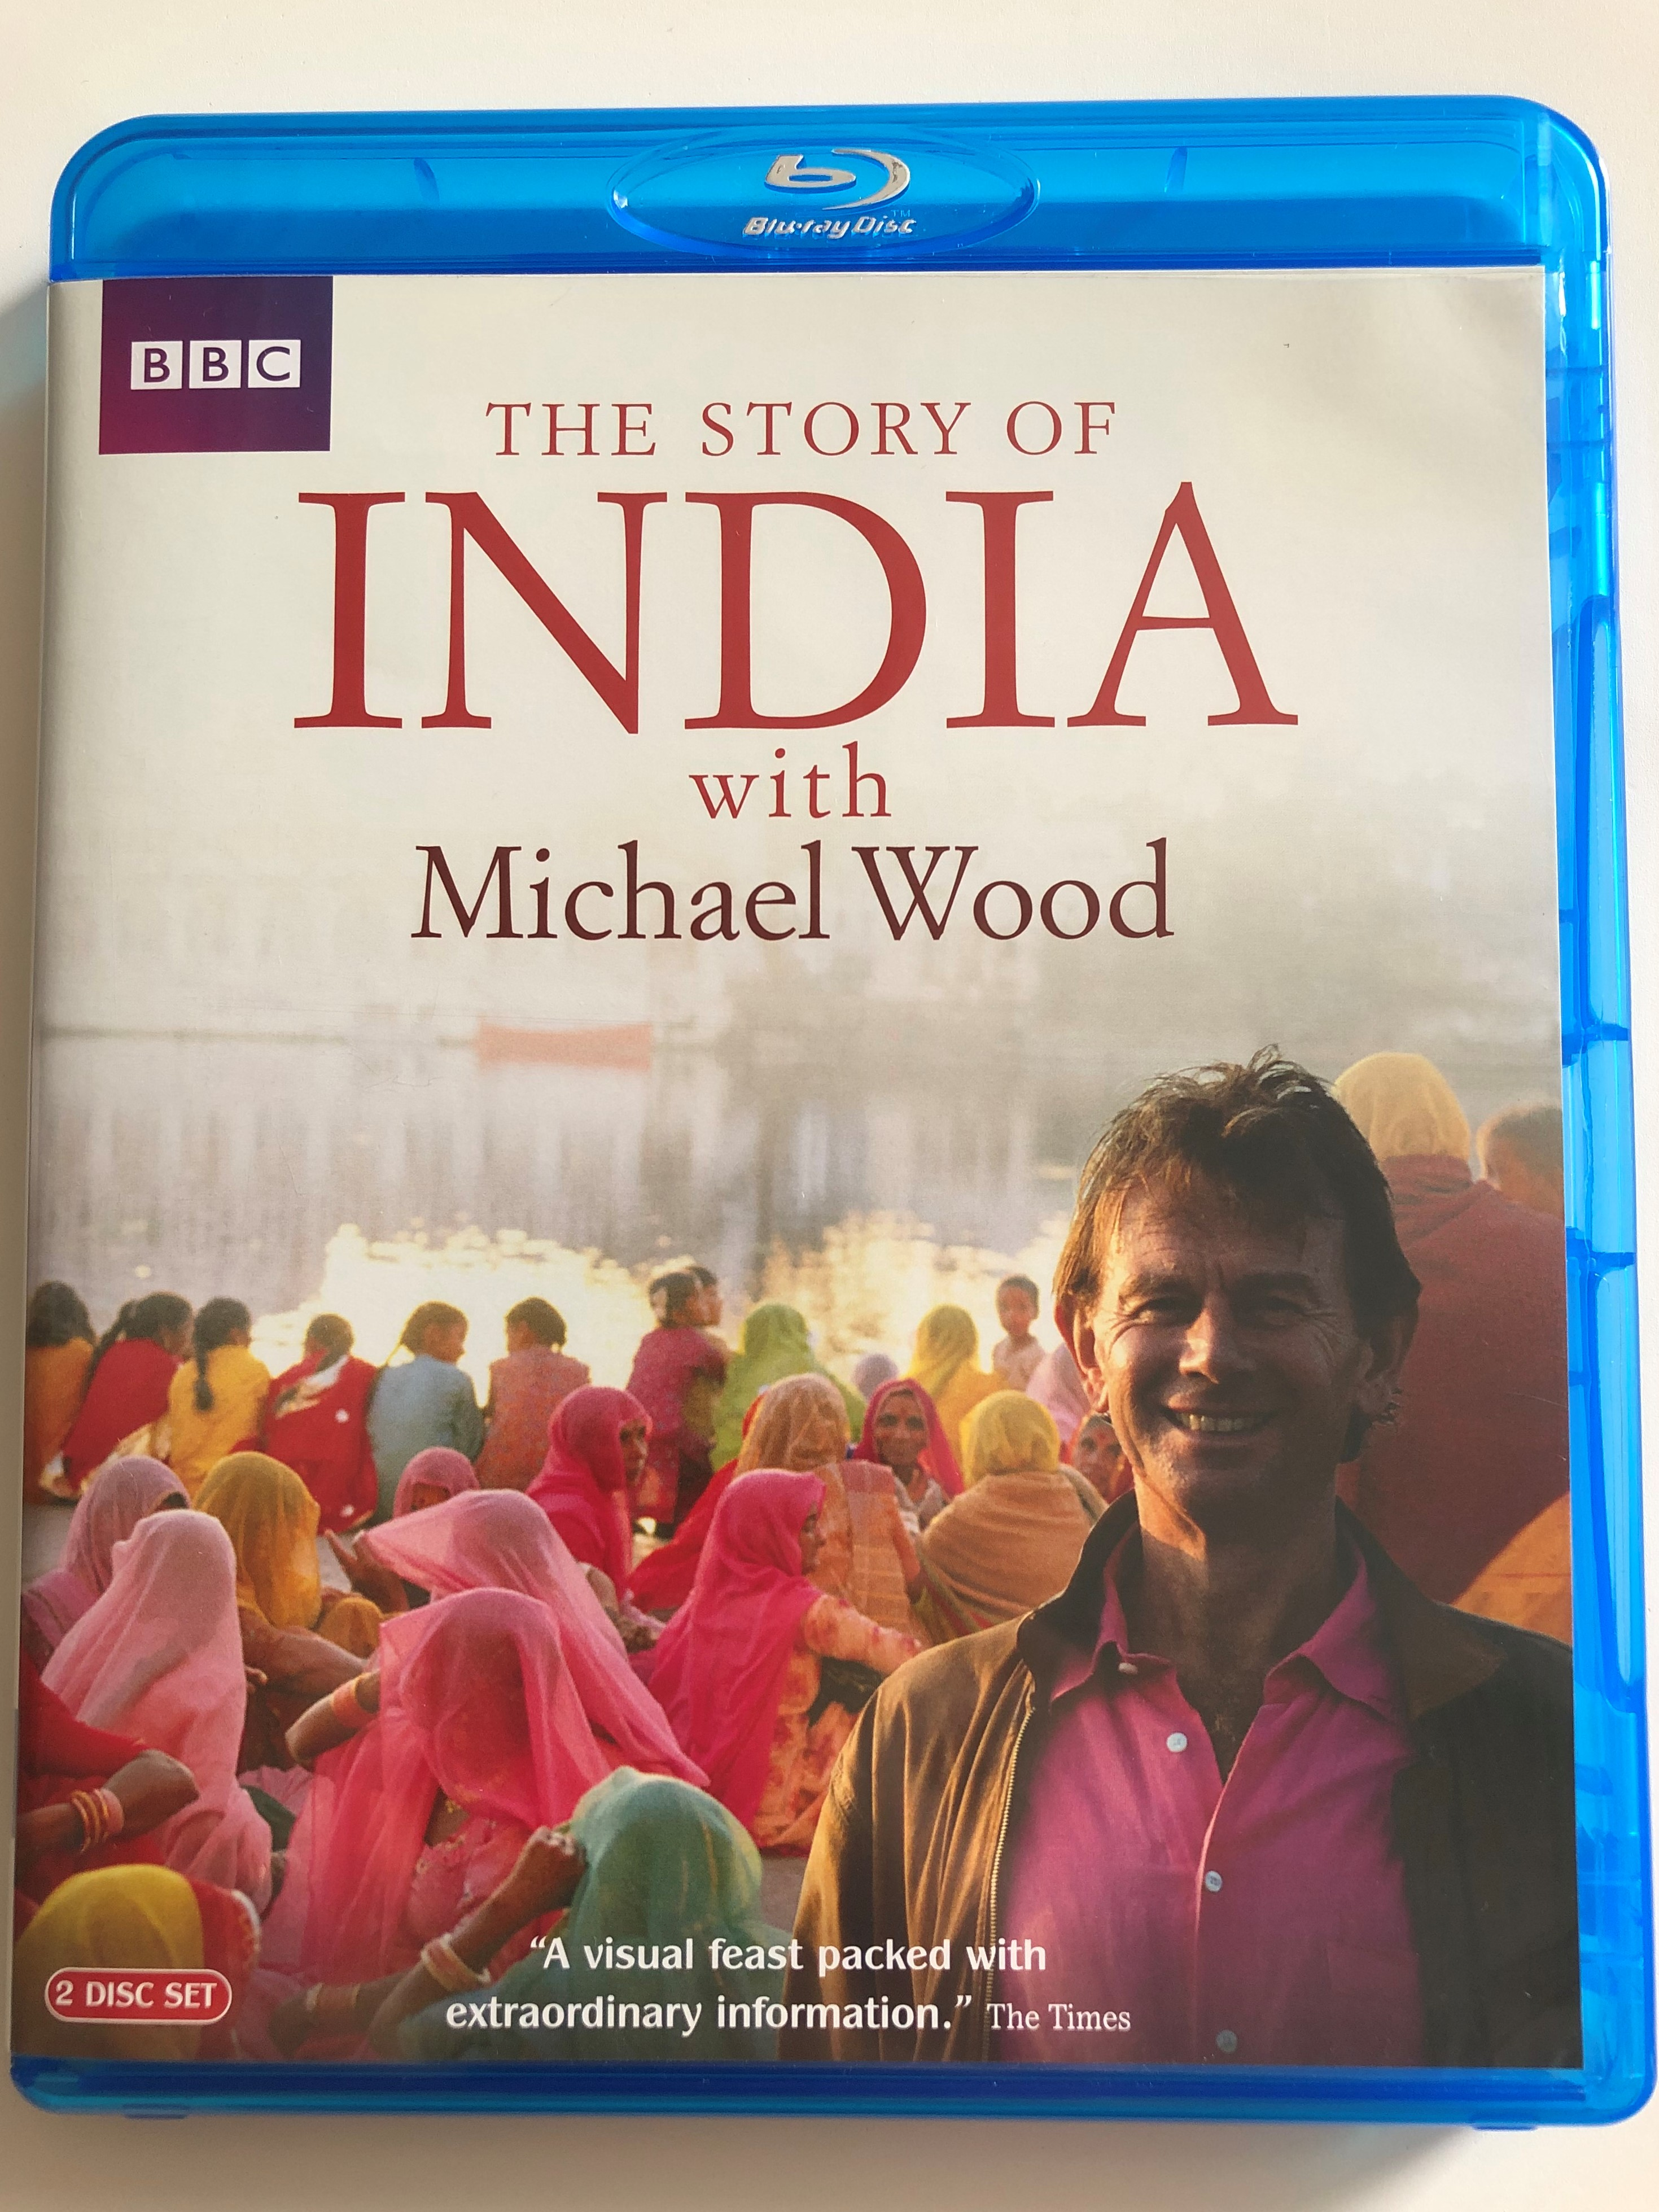 the-story-of-india-with-michael-wood-bluray-a-visual-feast-packed-with-extraordinary-information-bbc-2-disc-set-1-.jpg